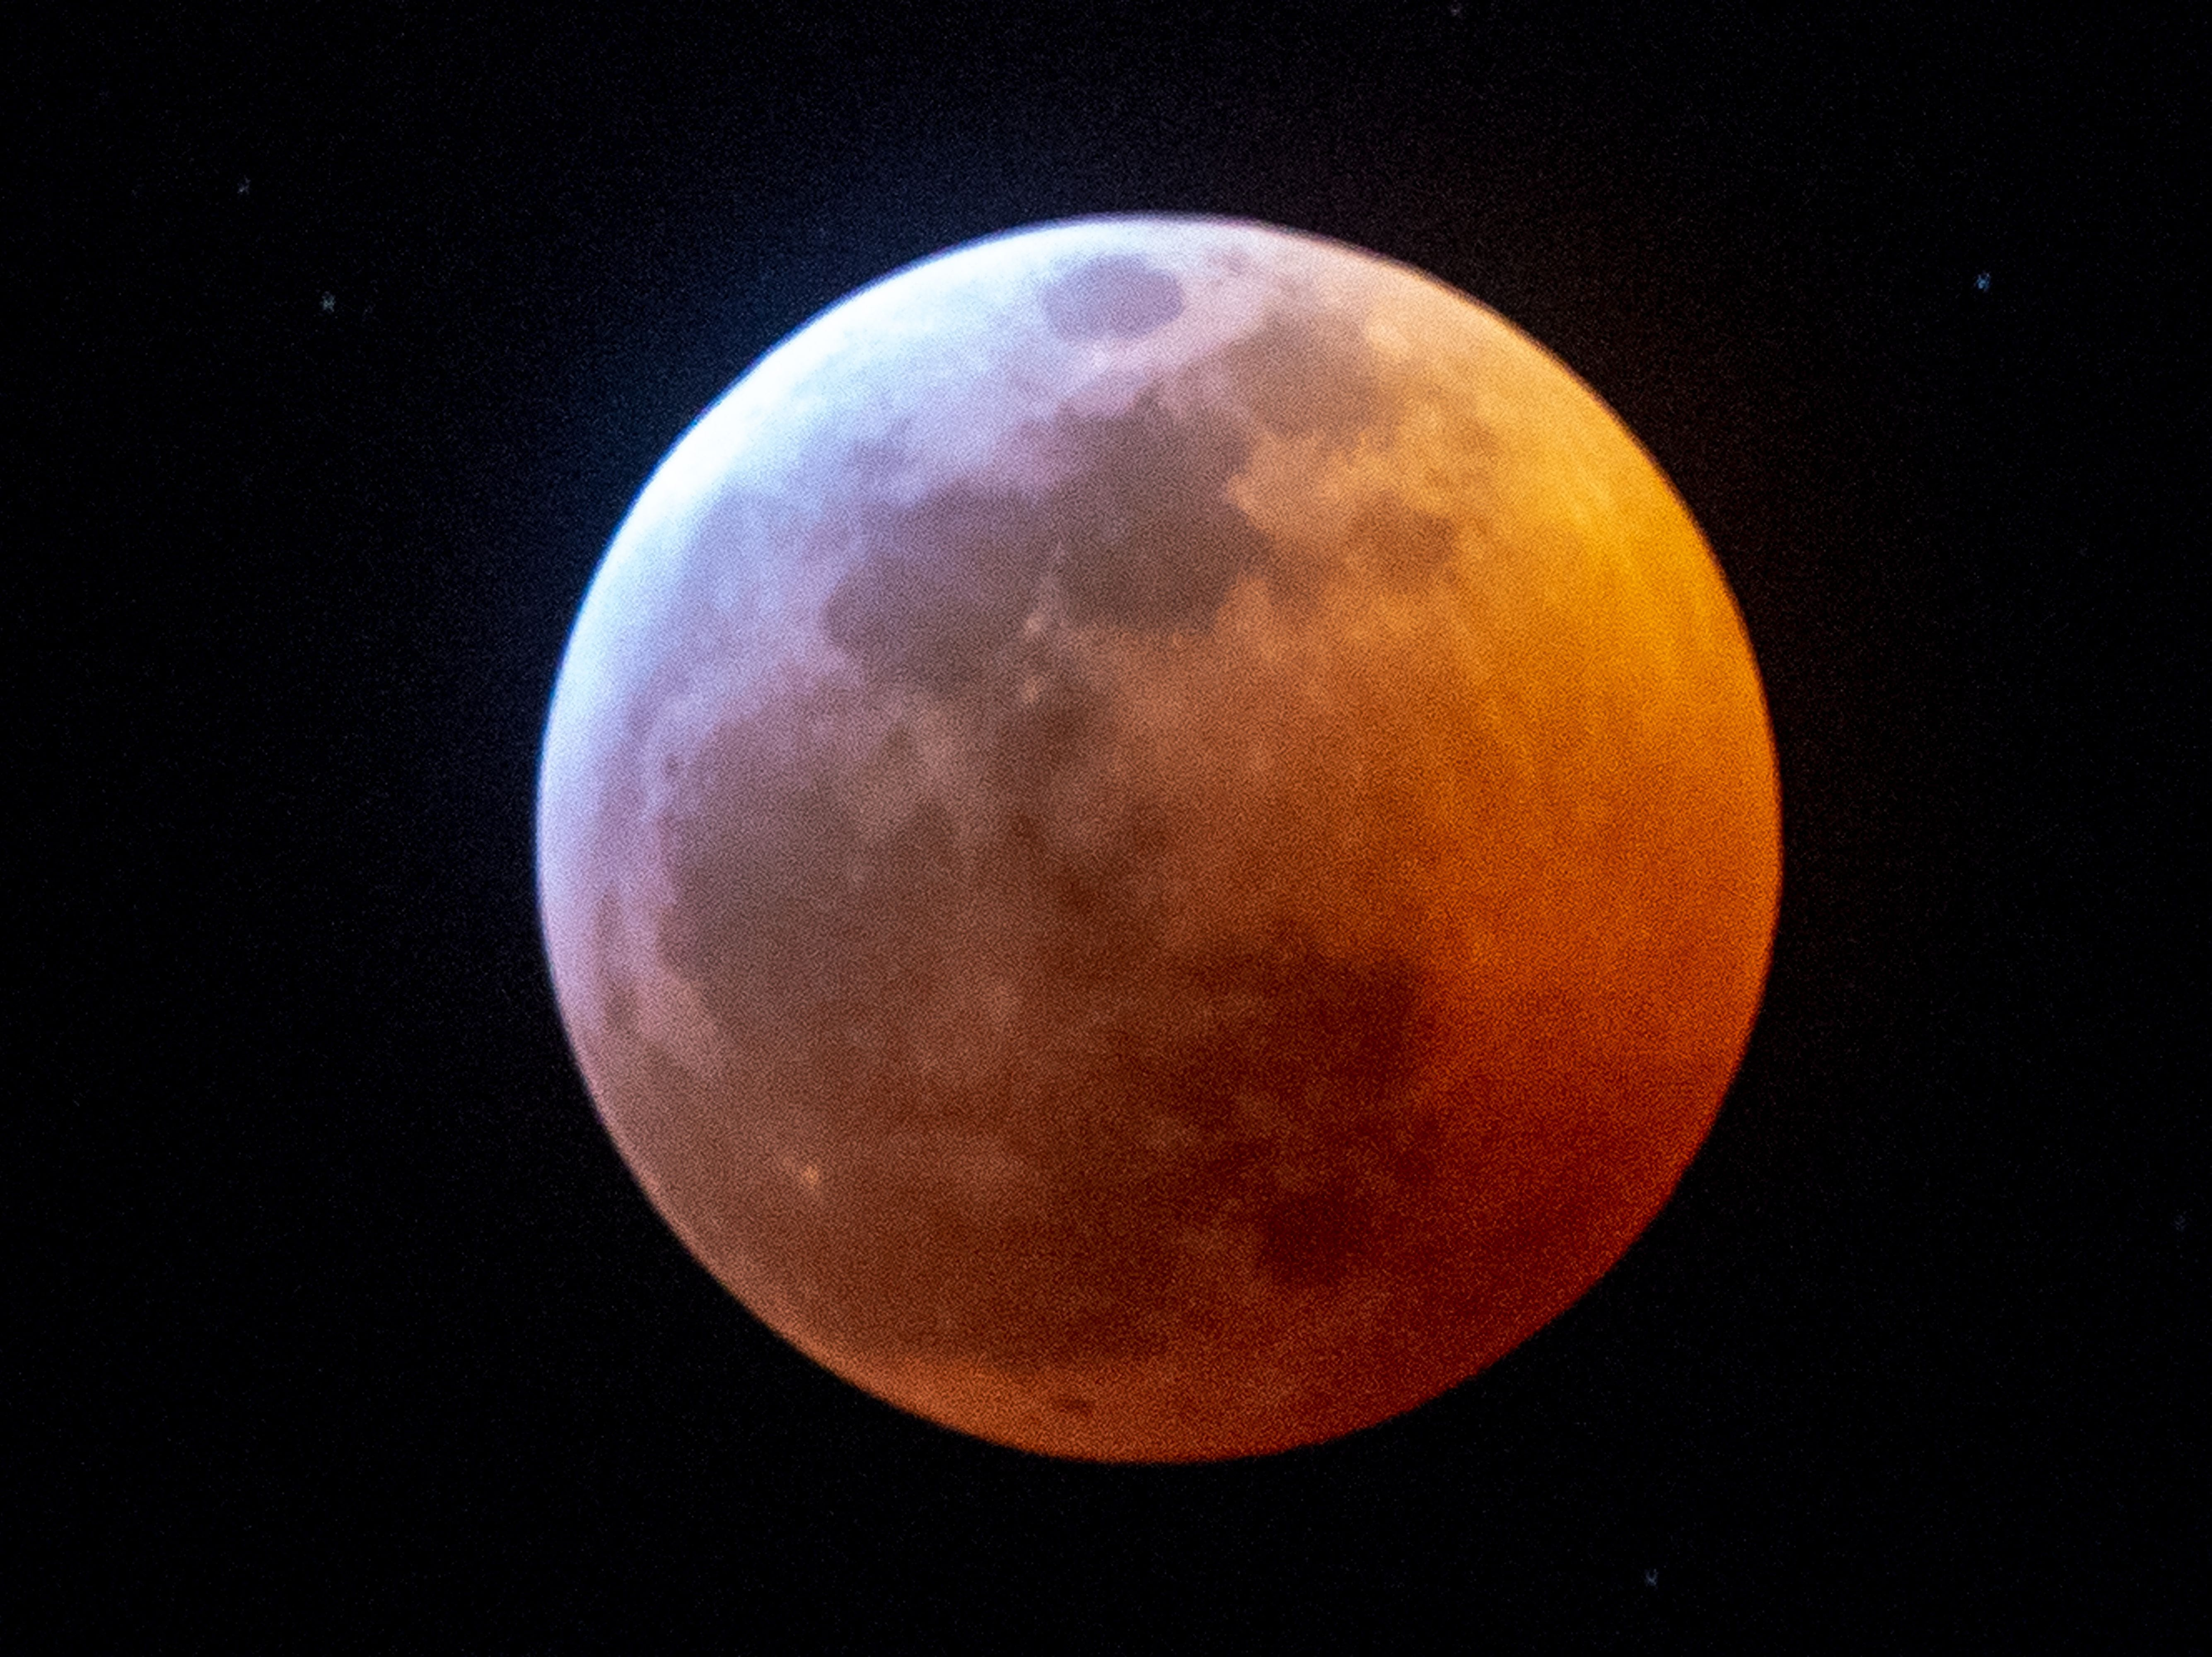 Earth's shadow almost totally obscures the view of the so-called Super Blood Wolf Moon during a total lunar eclipse, on Sunday January 20, 2019, in Miami, Florida. - The January 21 total lunar eclipse will be the last one until May 2021, and the last one visible from the United States until 2022. (Photo by Gaston De Cardenas / AFP)